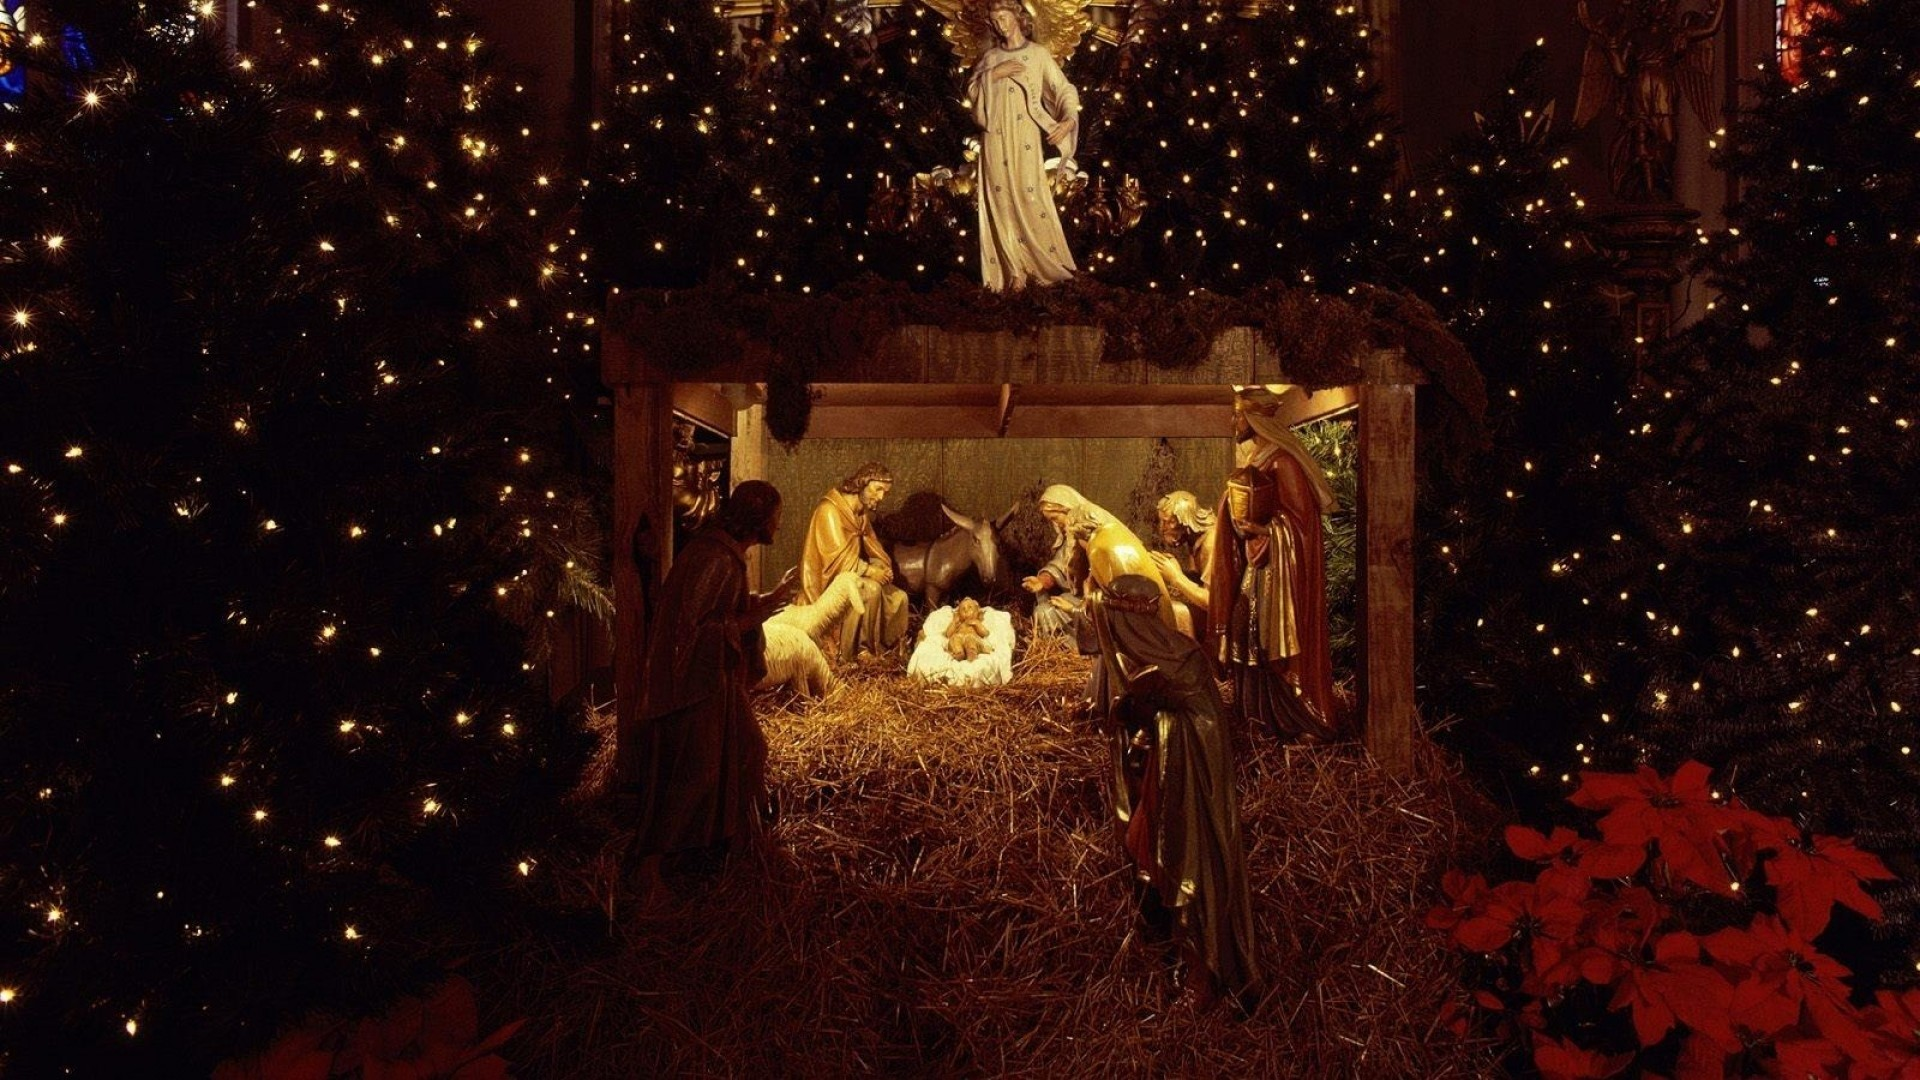 1920x1080 Preview wallpaper christmas, jesus, nurseries, christmas trees, garland,  holiday, people